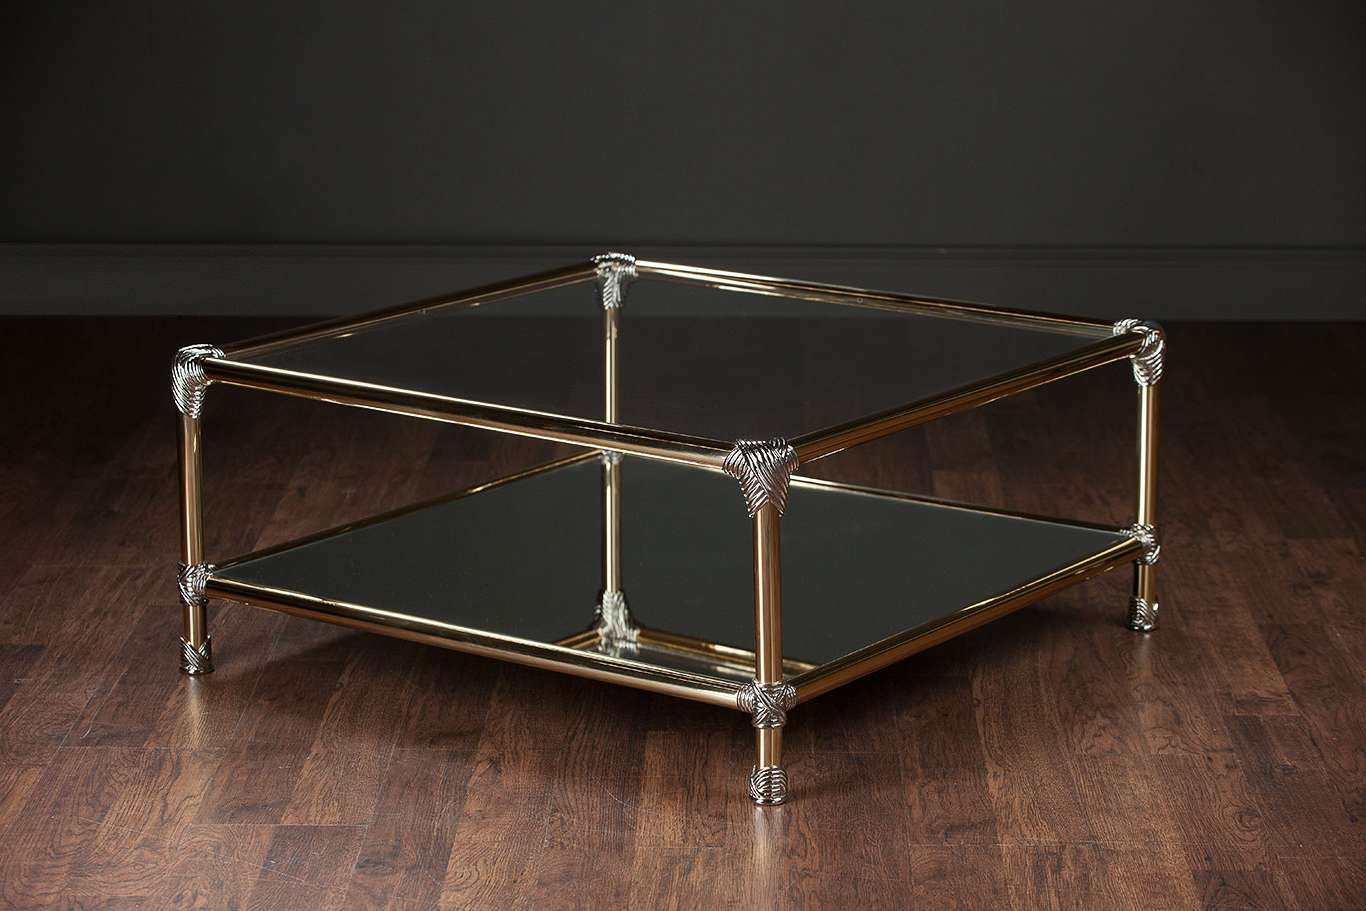 Vintage Brass And Chrome Coffee Table – Mecox Gardens Regarding Recent Vintage Mirror Coffee Tables (Gallery 20 of 20)